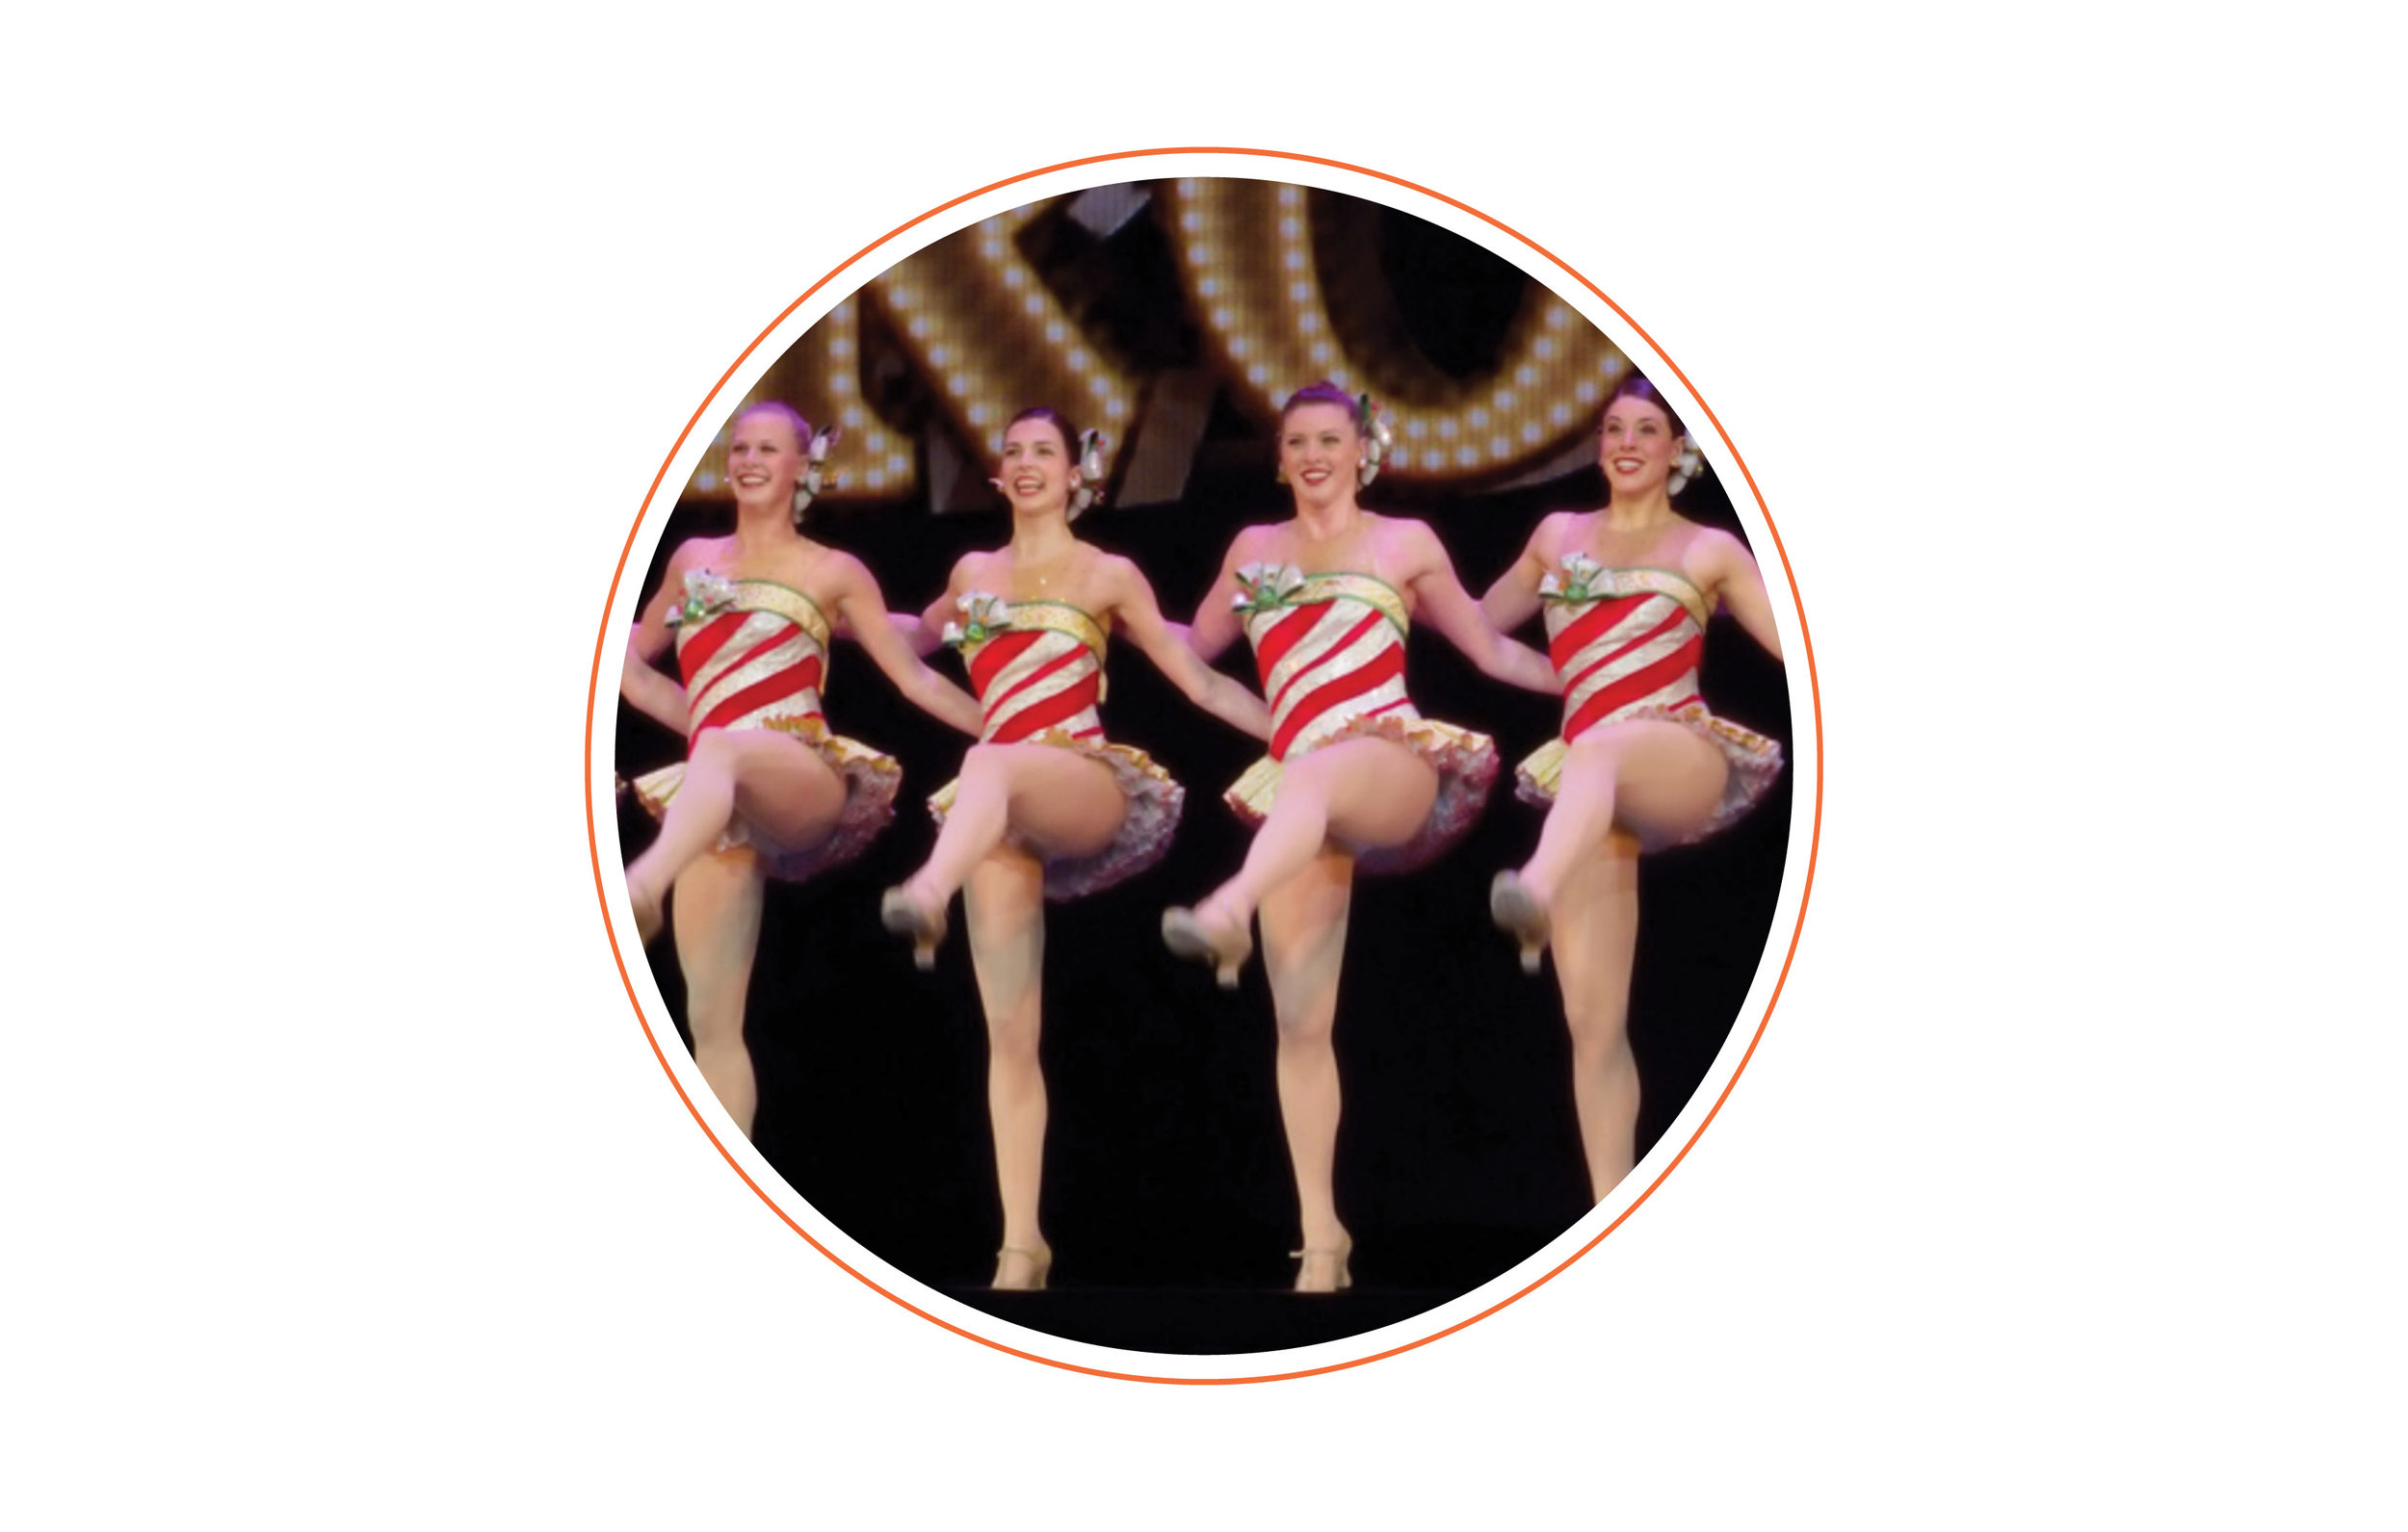 What did you want to be when you grew up? - A Rockette, but sadly I never reached the height requirement. Did you know Rockettes have to be between 5' 6